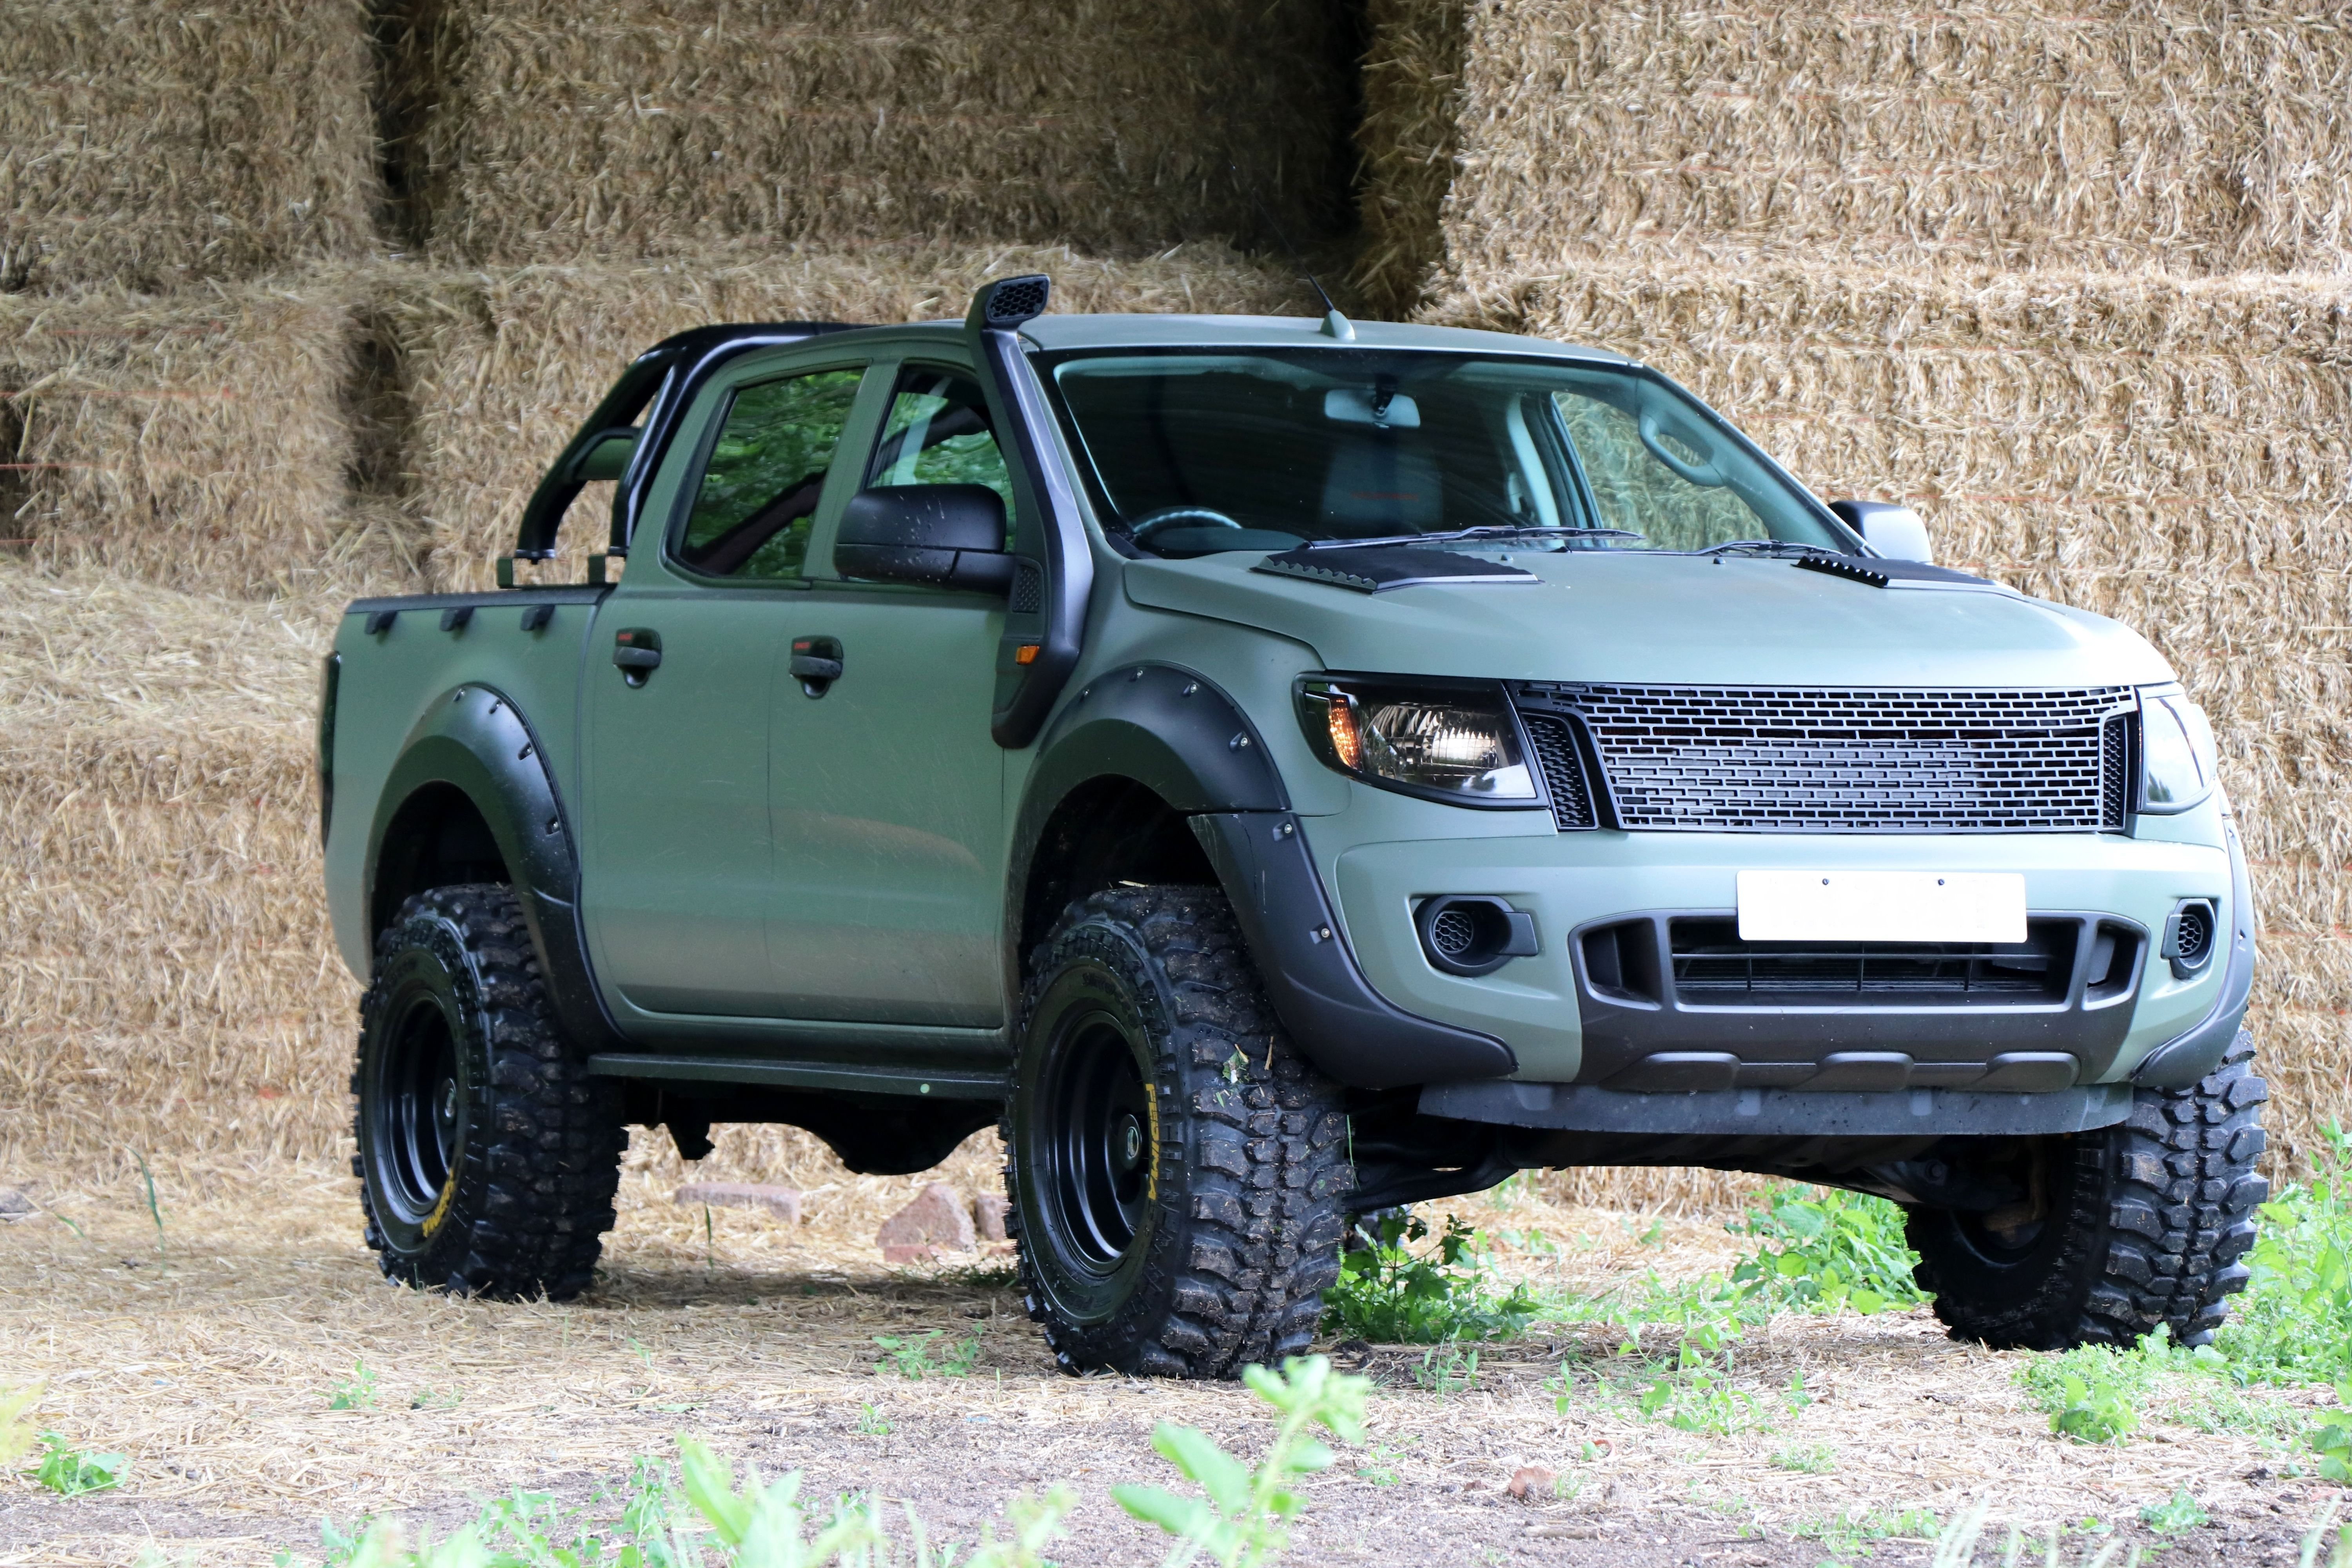 SEEKER Raptor CAMO GREEN special edition